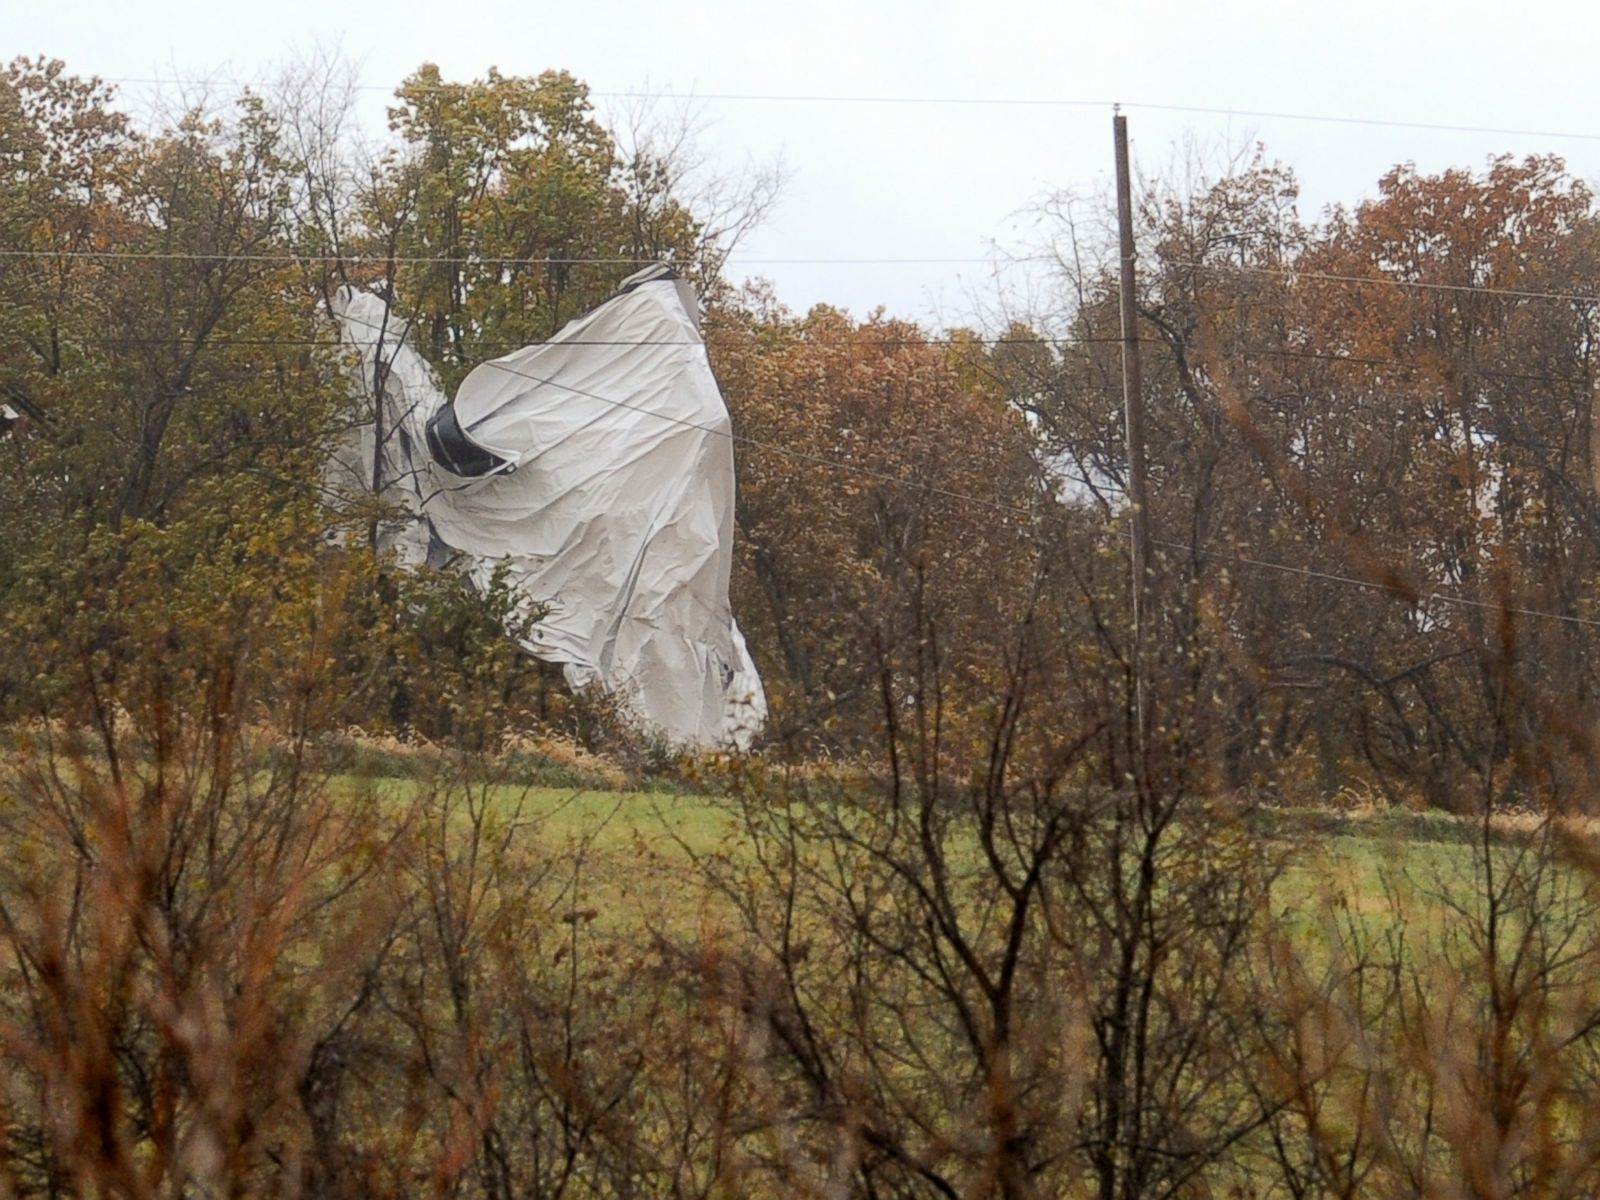 More Than 6,000 Feet of Tether Removed From Military Blimp